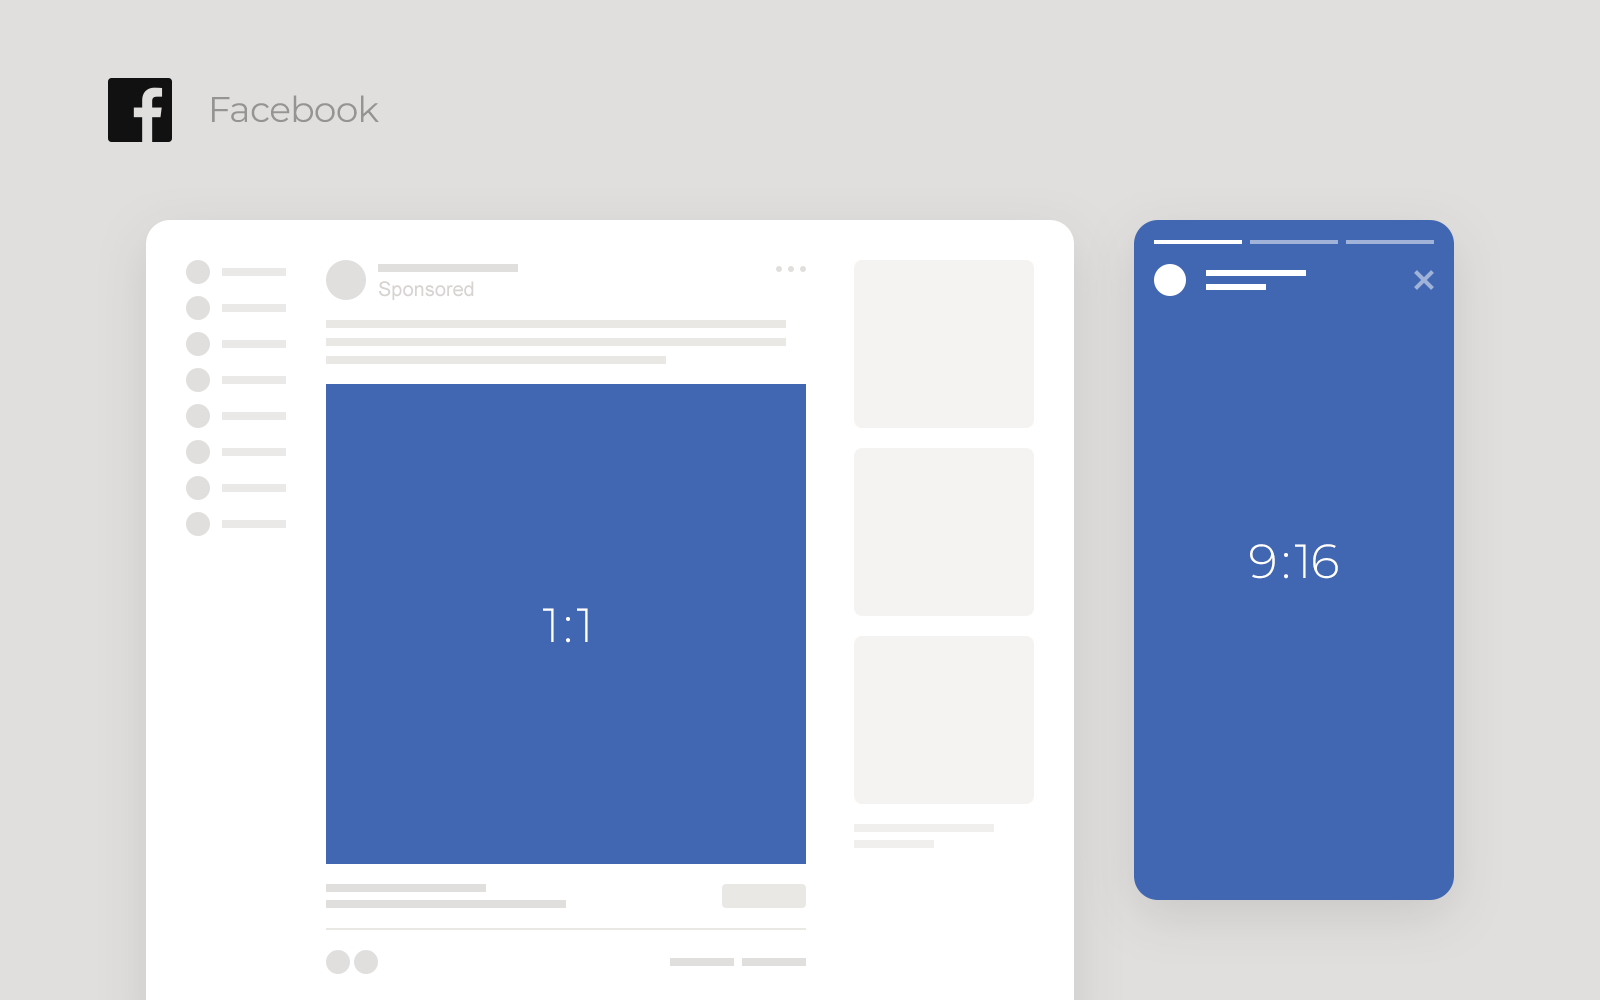 Facebook Stories, Square videos and their aspect ratio